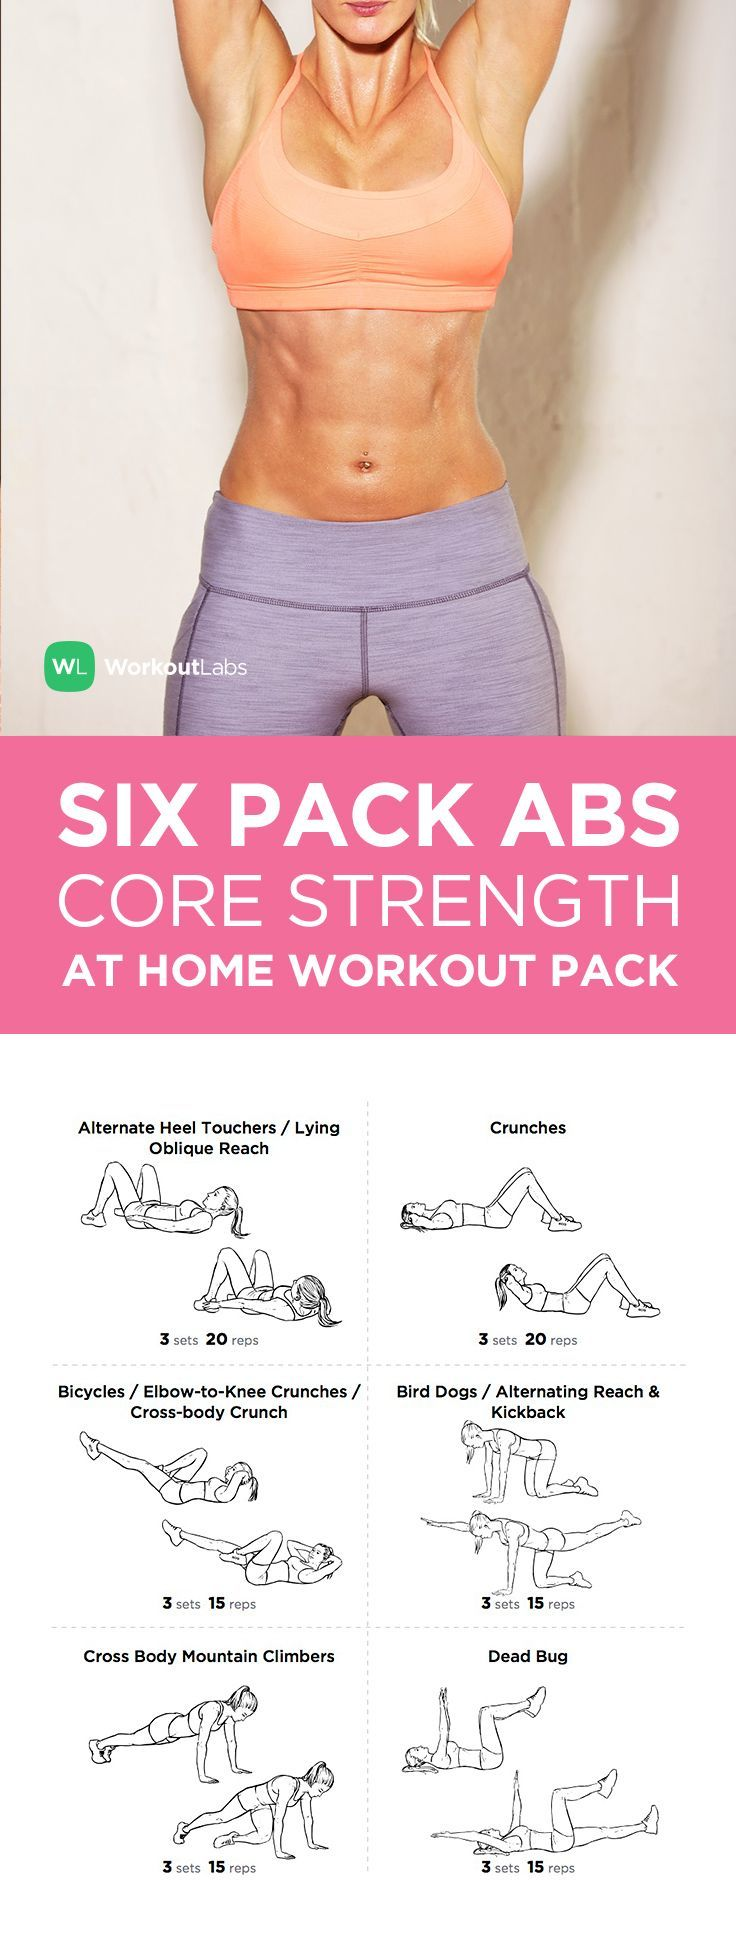 Six Pack Abs Core Strength at Home Workout Pack